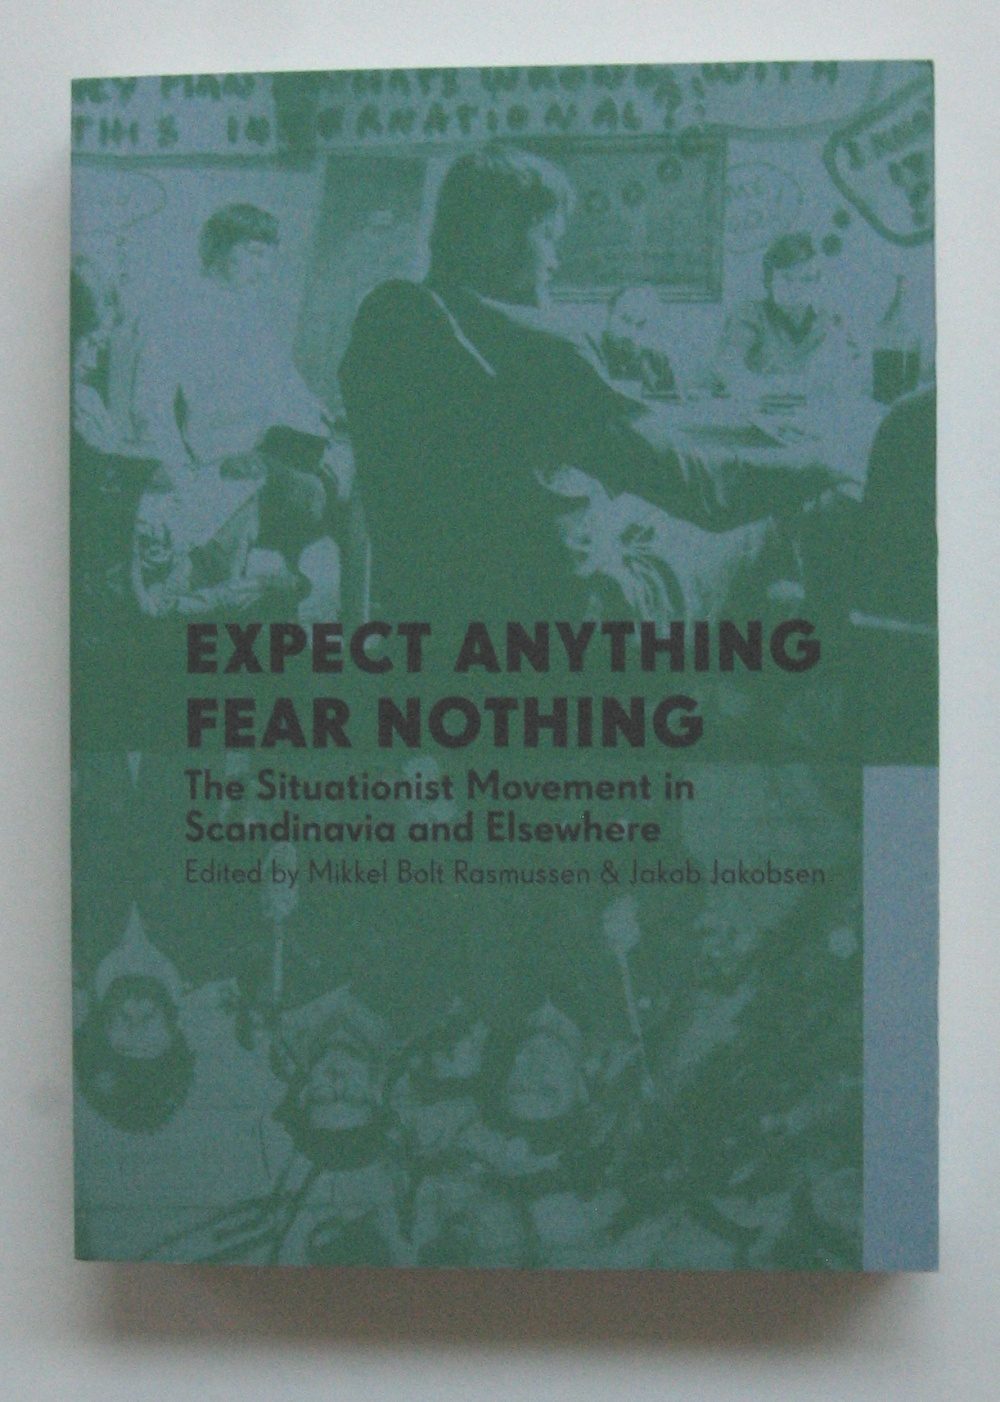 Expect Anything Fear Nothing: The Situationist Movement in Scand